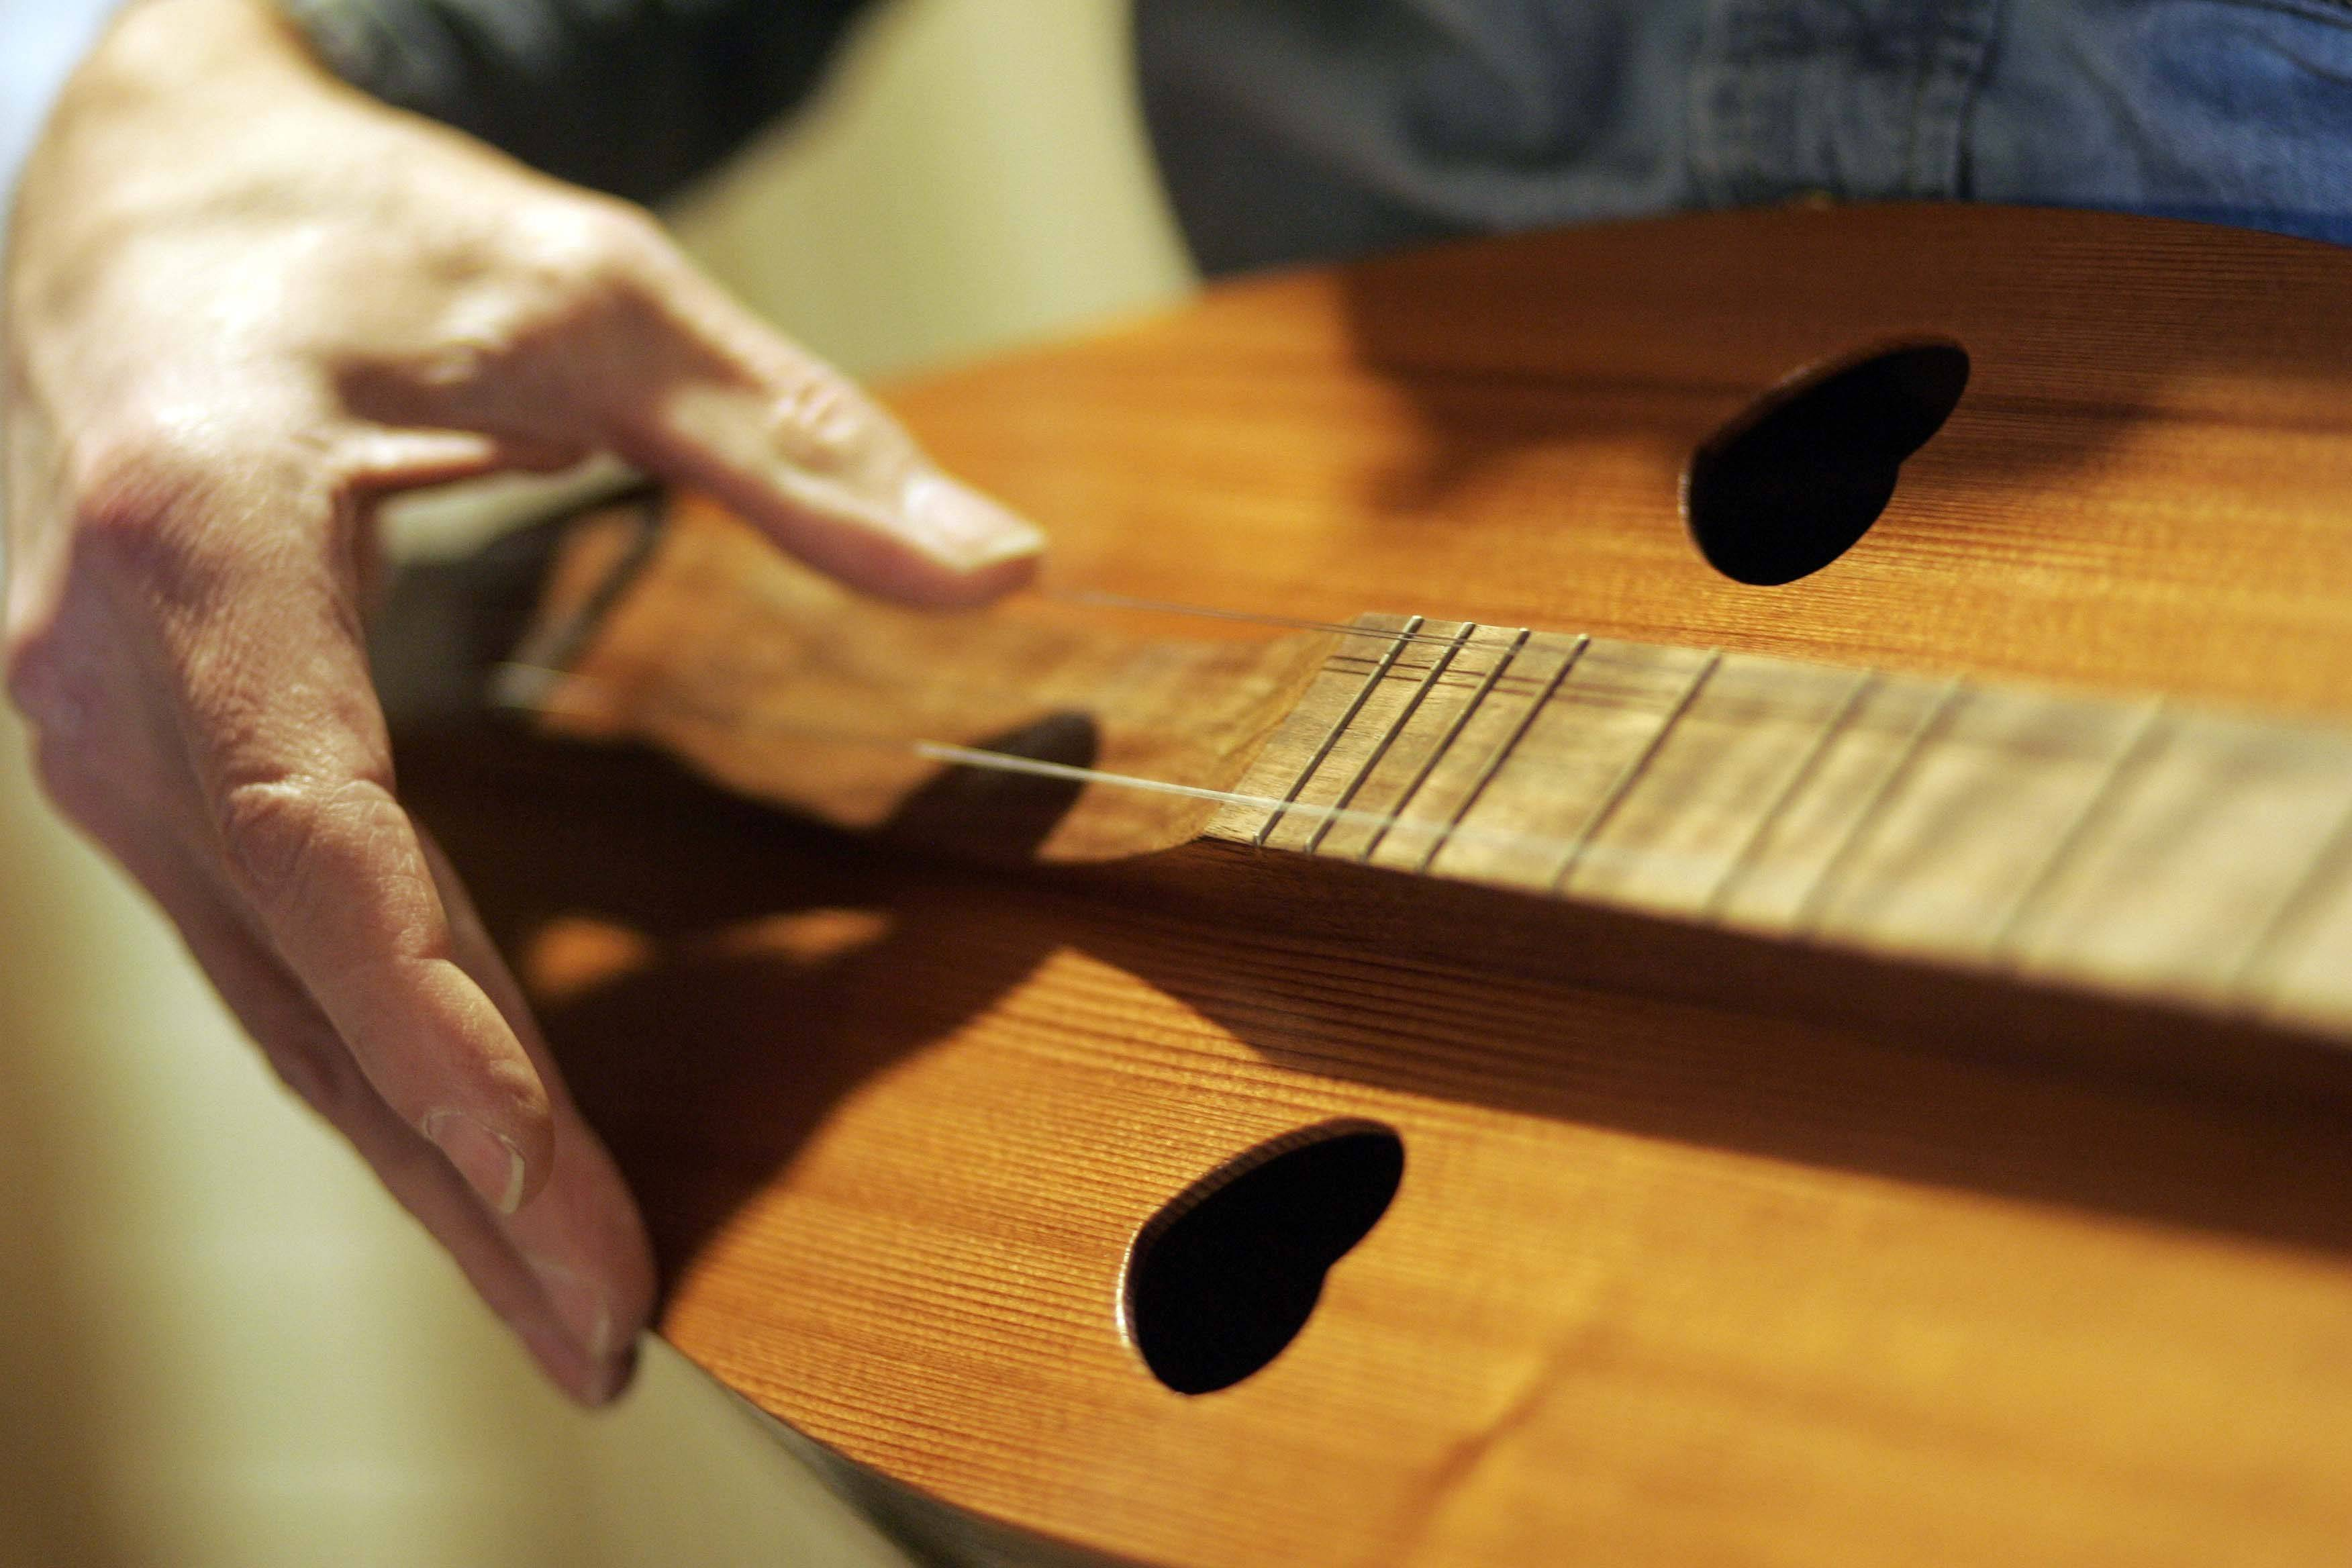 Brunkalla plays one of his handmade dulcimers in his Marengo workshop.